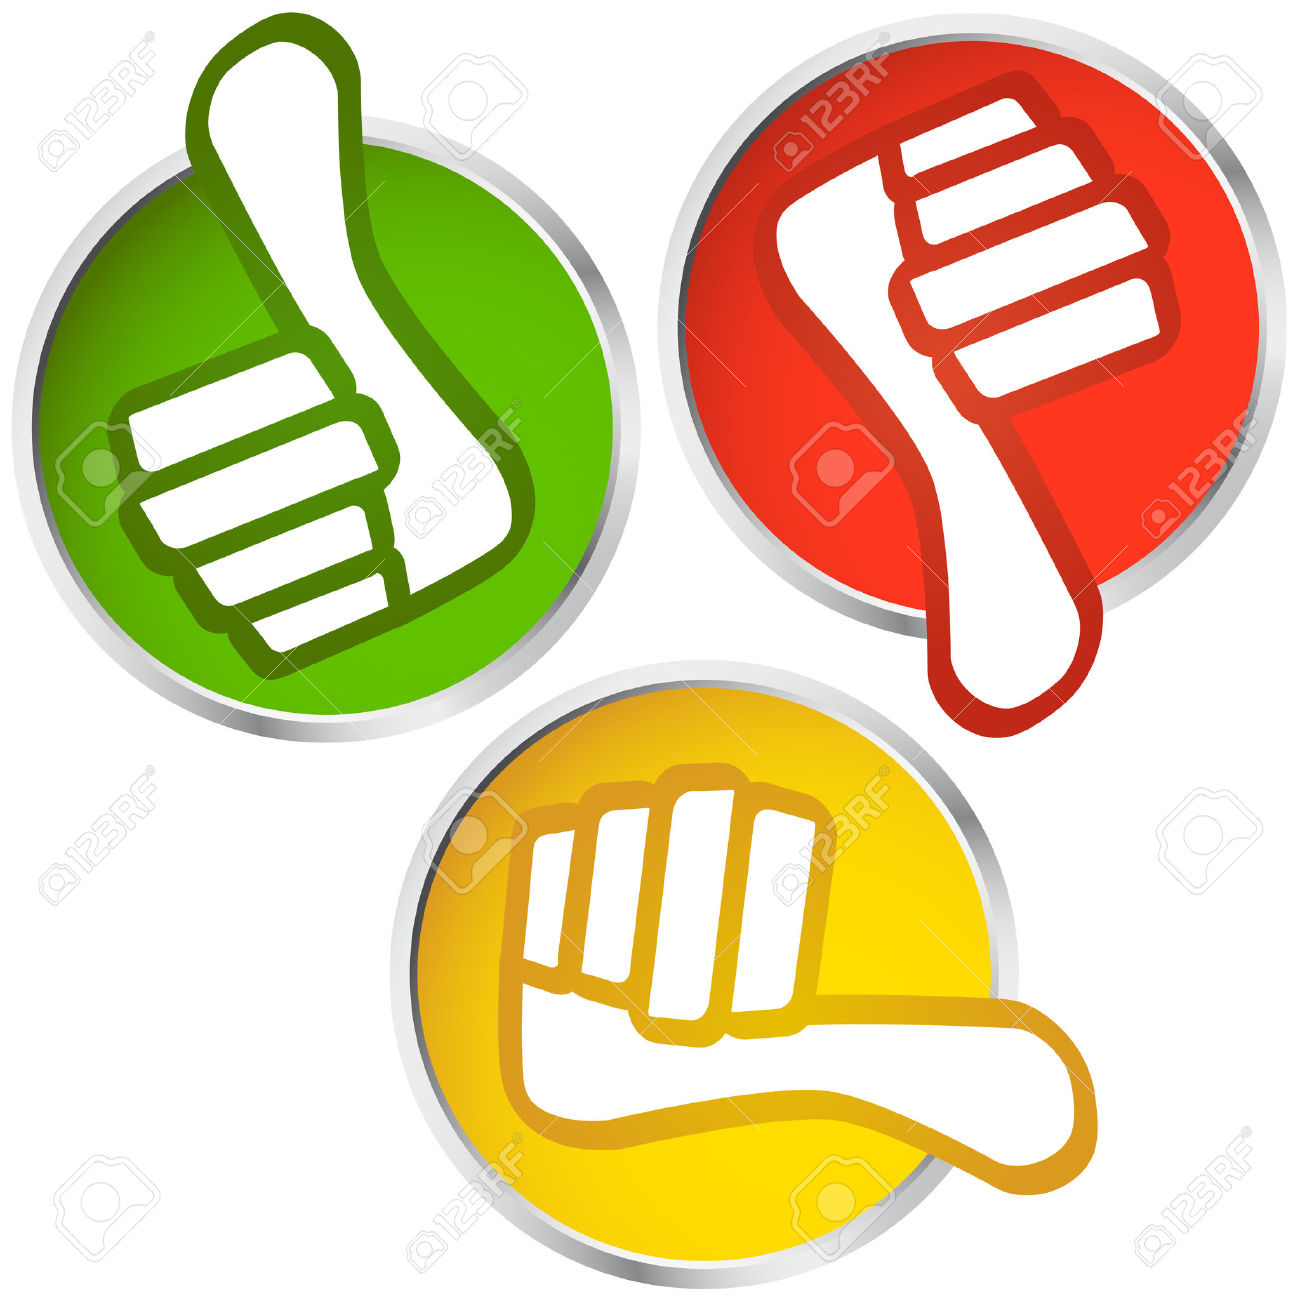 1300x1300 Clipart Thumbs Up Microsoft